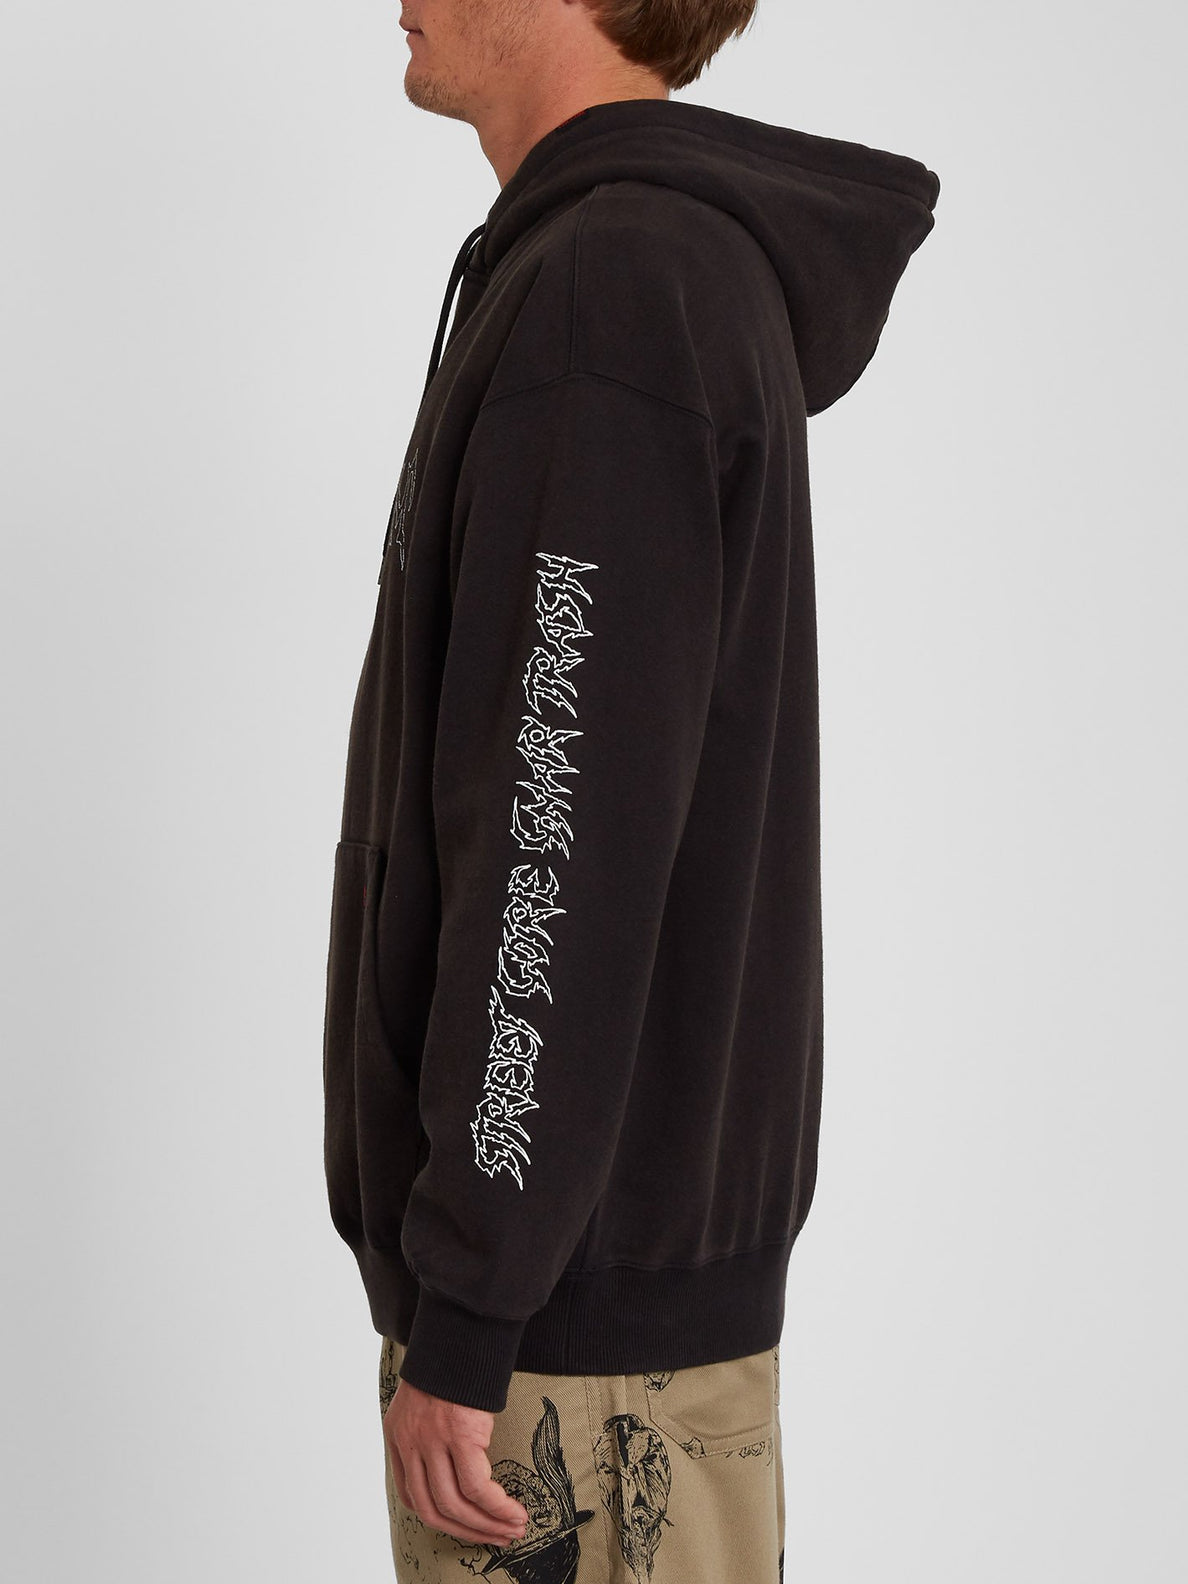 Something Out There Hoodie - BLACK (A4142004_BLK) [3]